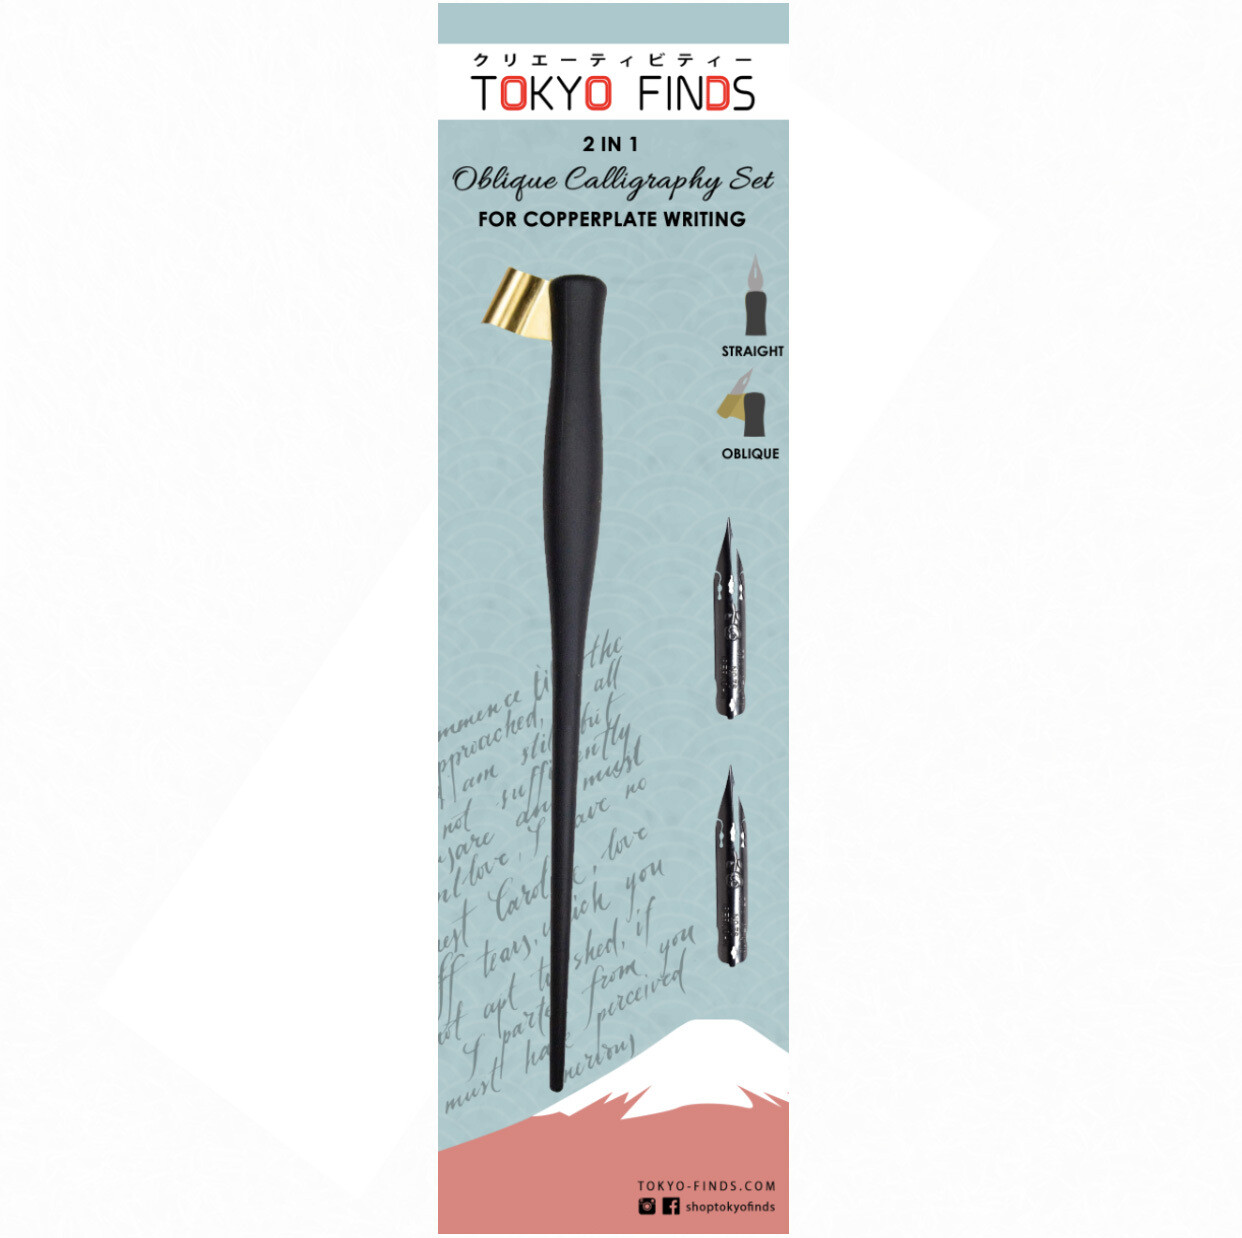 Tokyo Finds Oblique Calligraphy Holder and Nibs